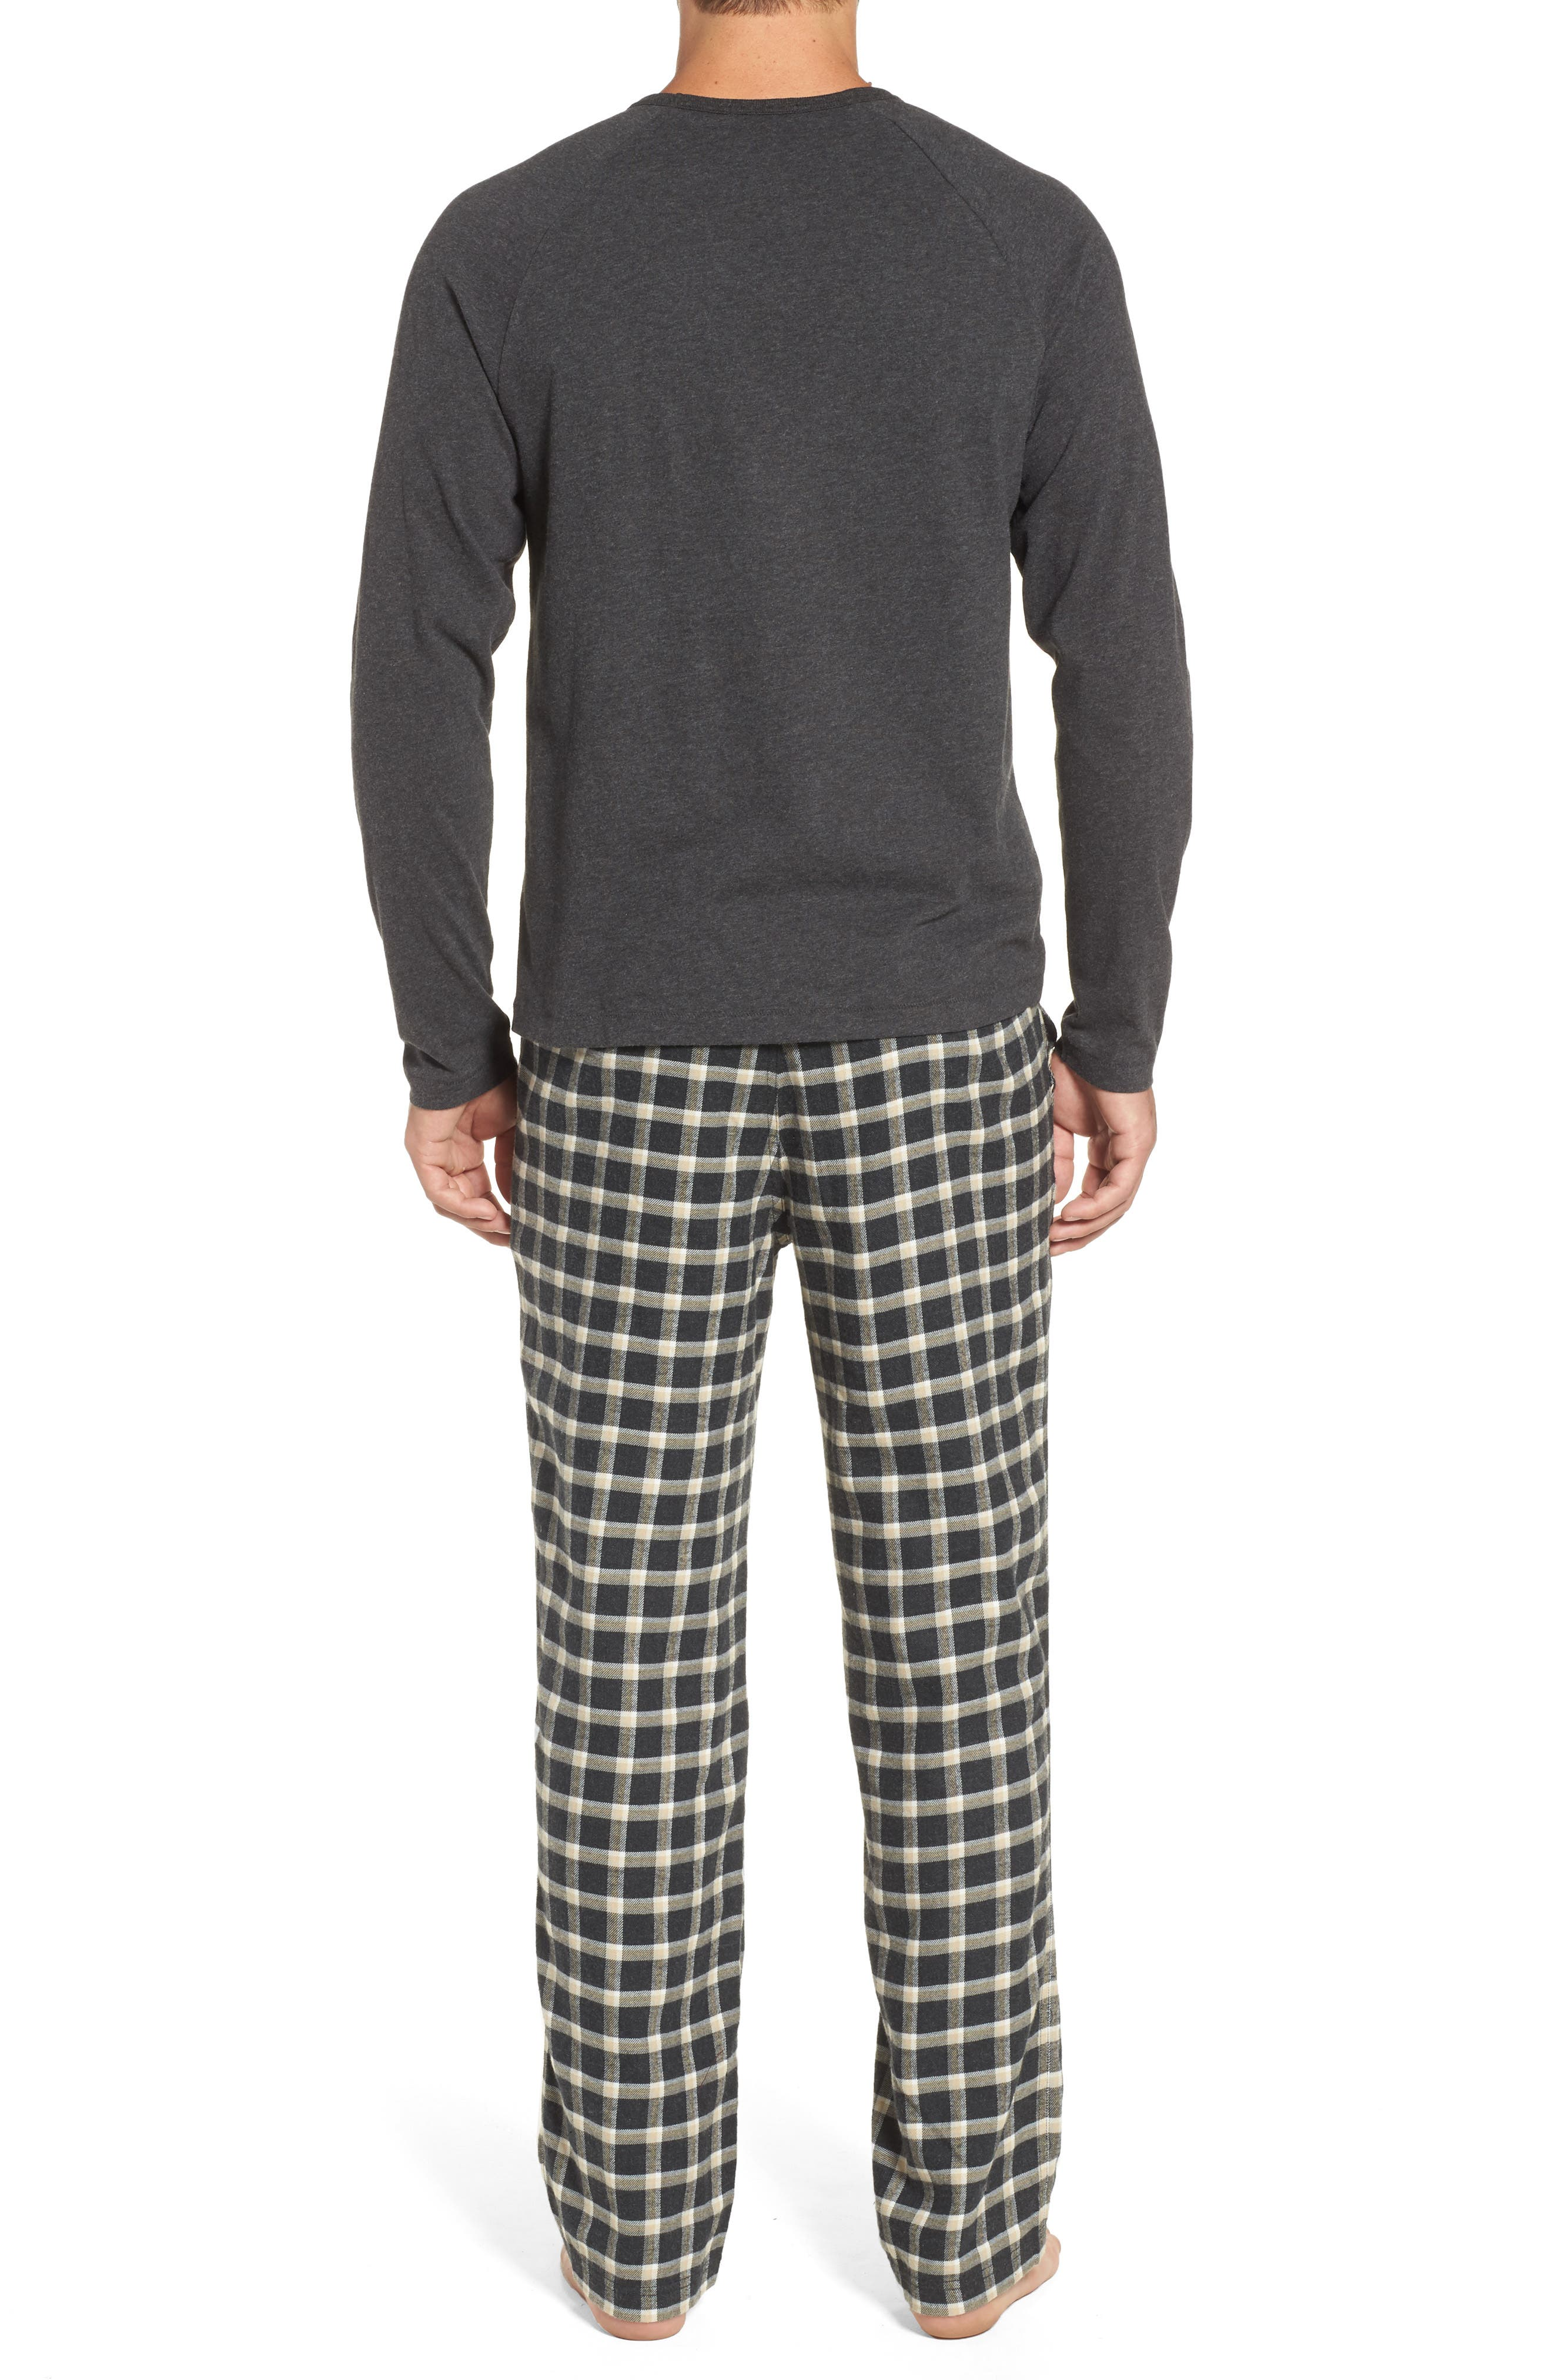 Steiner Pajama Set,                             Alternate thumbnail 2, color,                             Black/ Black Bear Heather